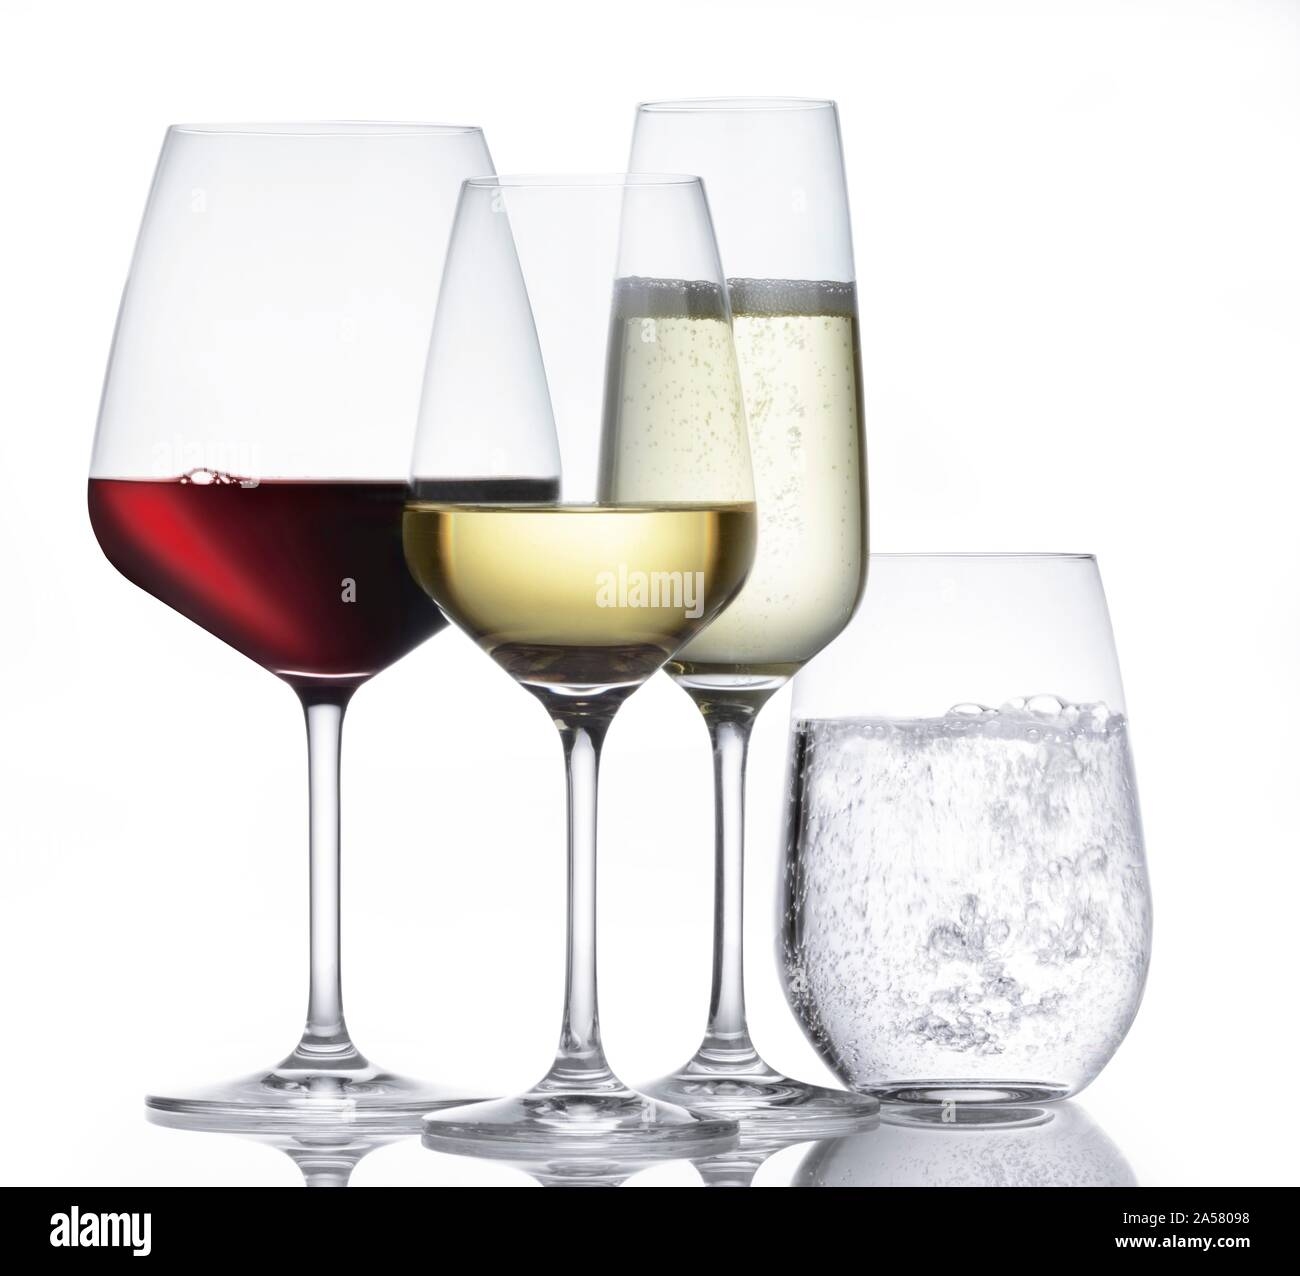 Various glasses, wine glasses with red wine and white wine, champagne glass and water glass, studio shot, cutout, white background, Germany Stock Photo